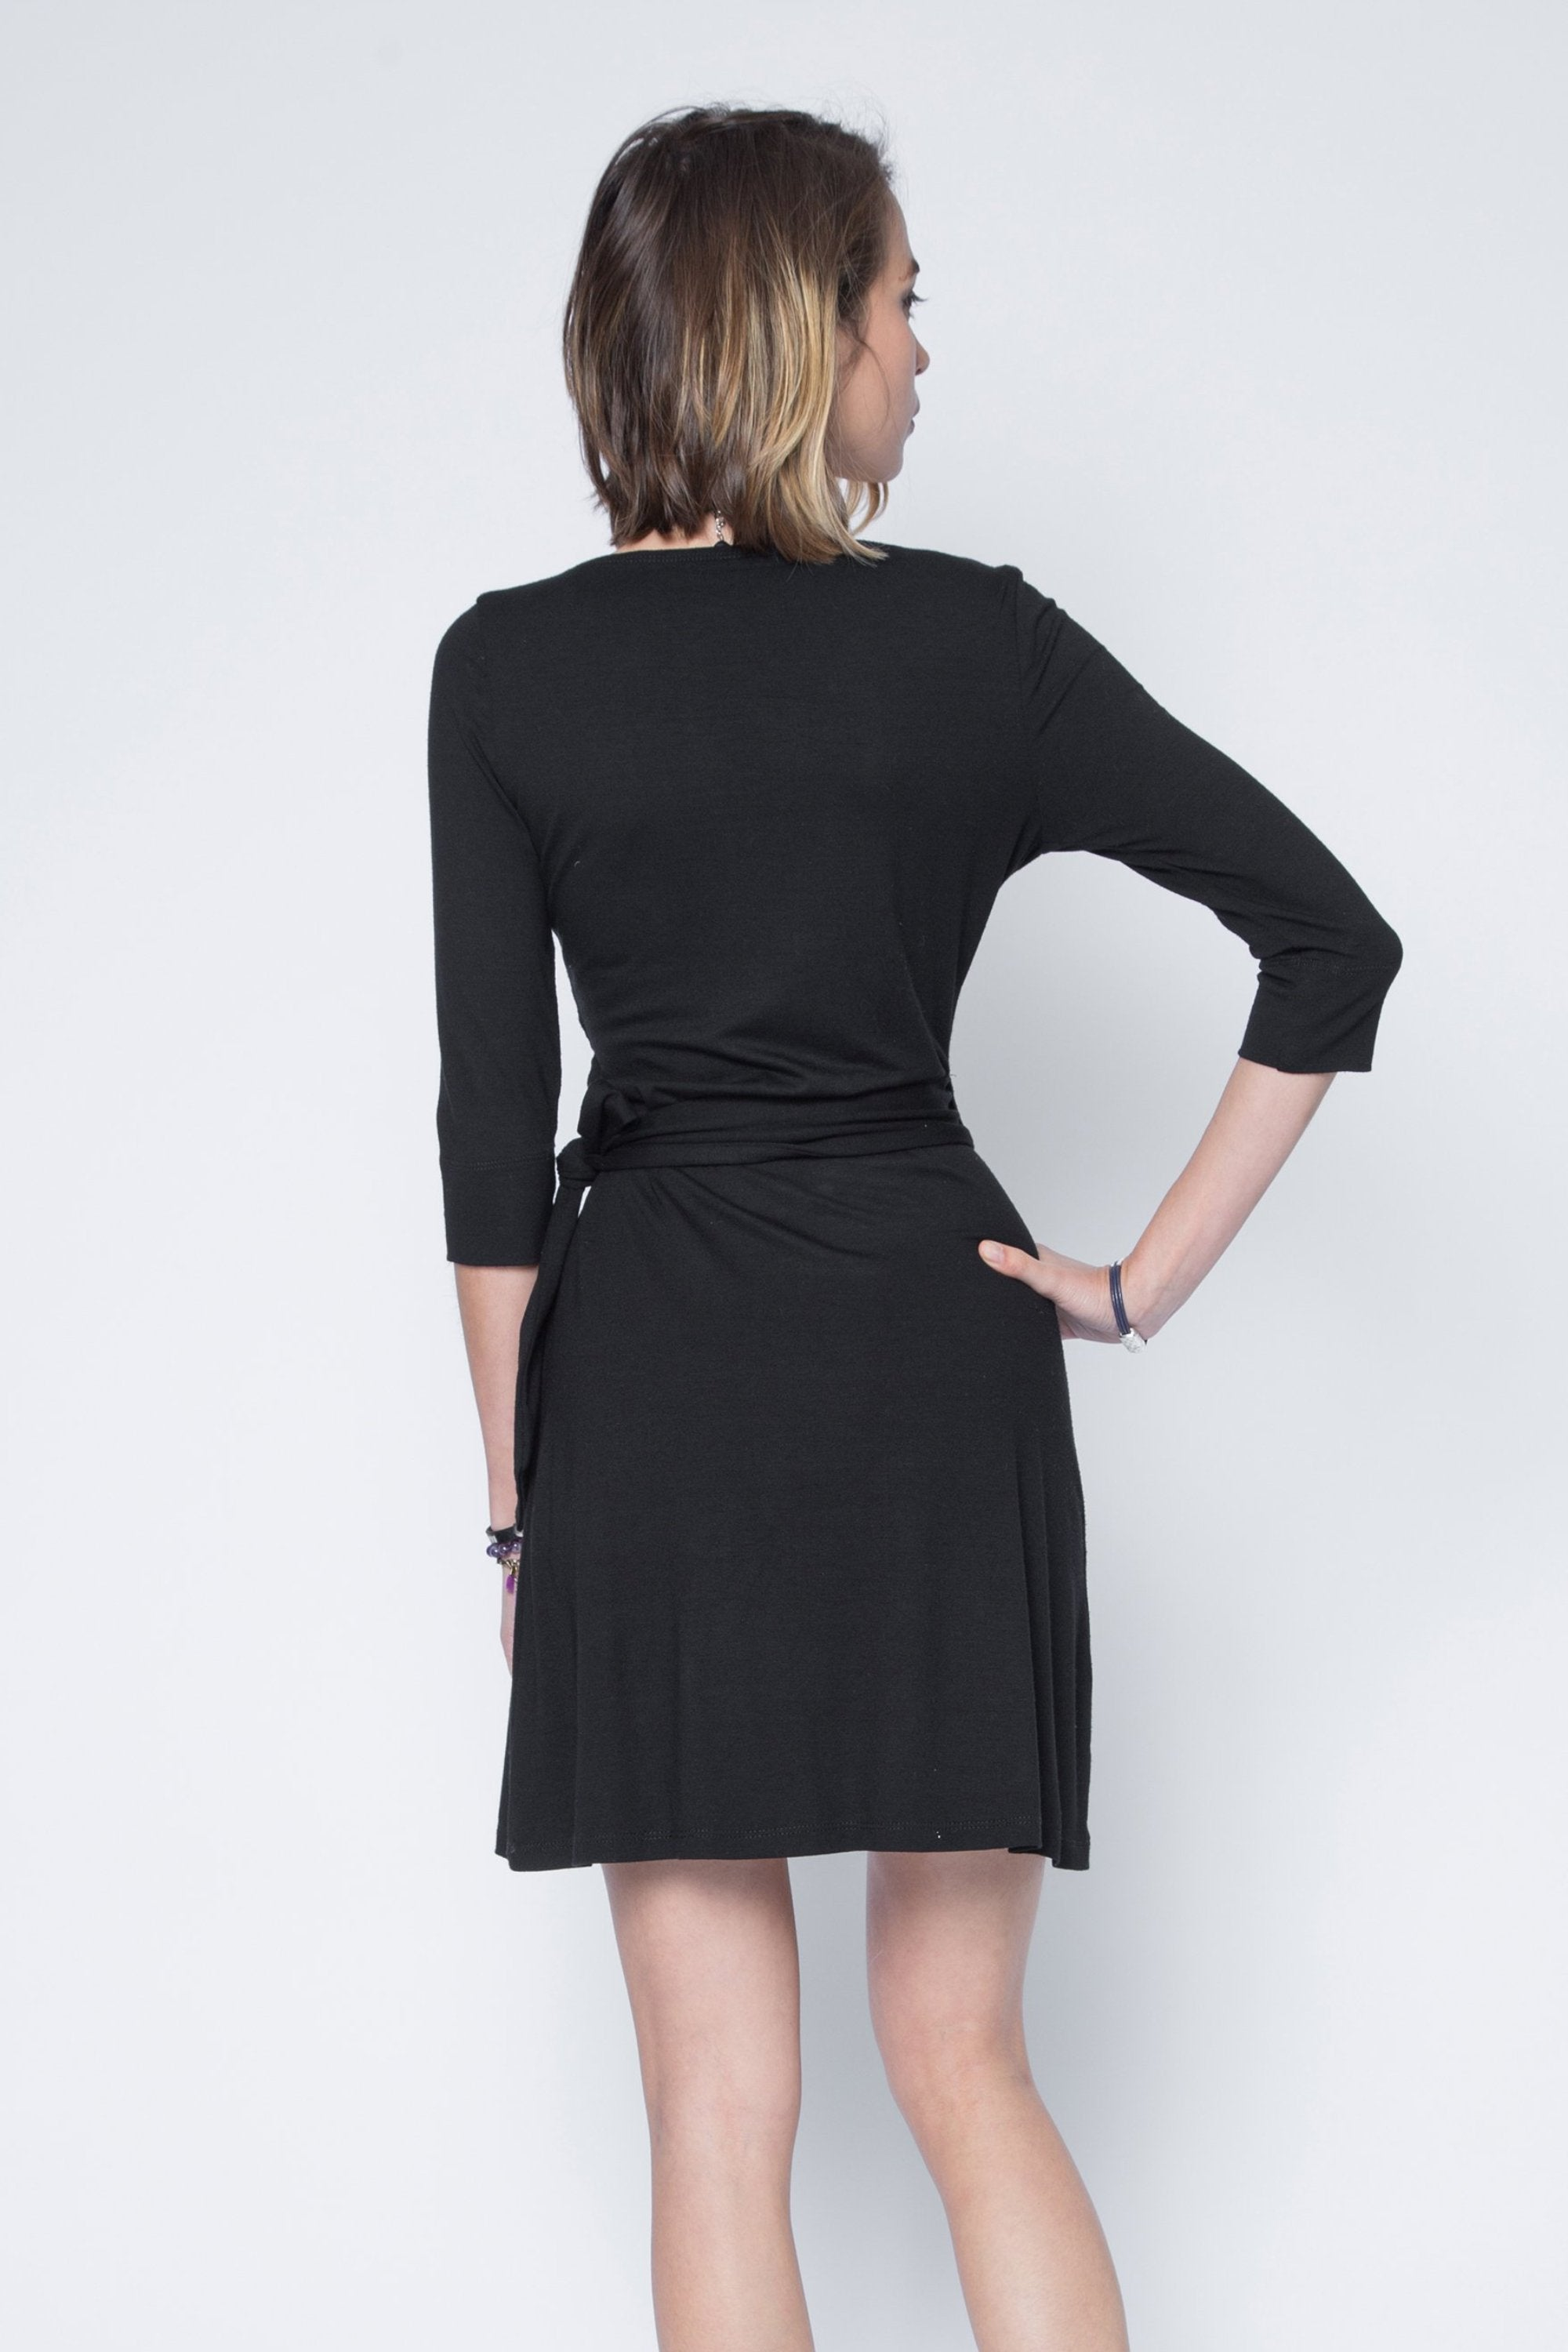 Signature Amanda Ballet Inspired Wrap Dress in Stretchable Jersey